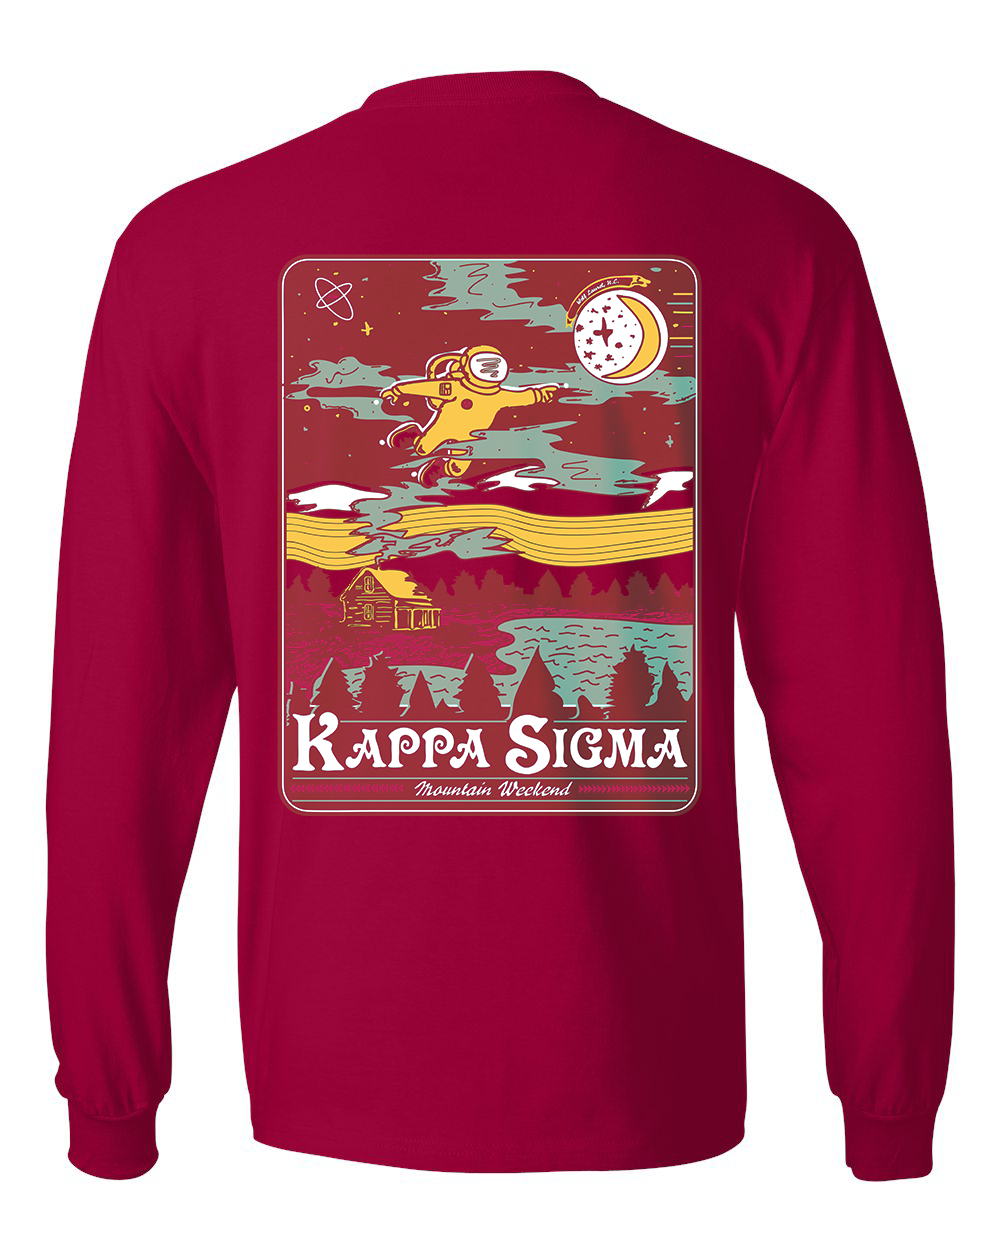 Kappa Sig Mountain Weekend Long Sleeve Tee